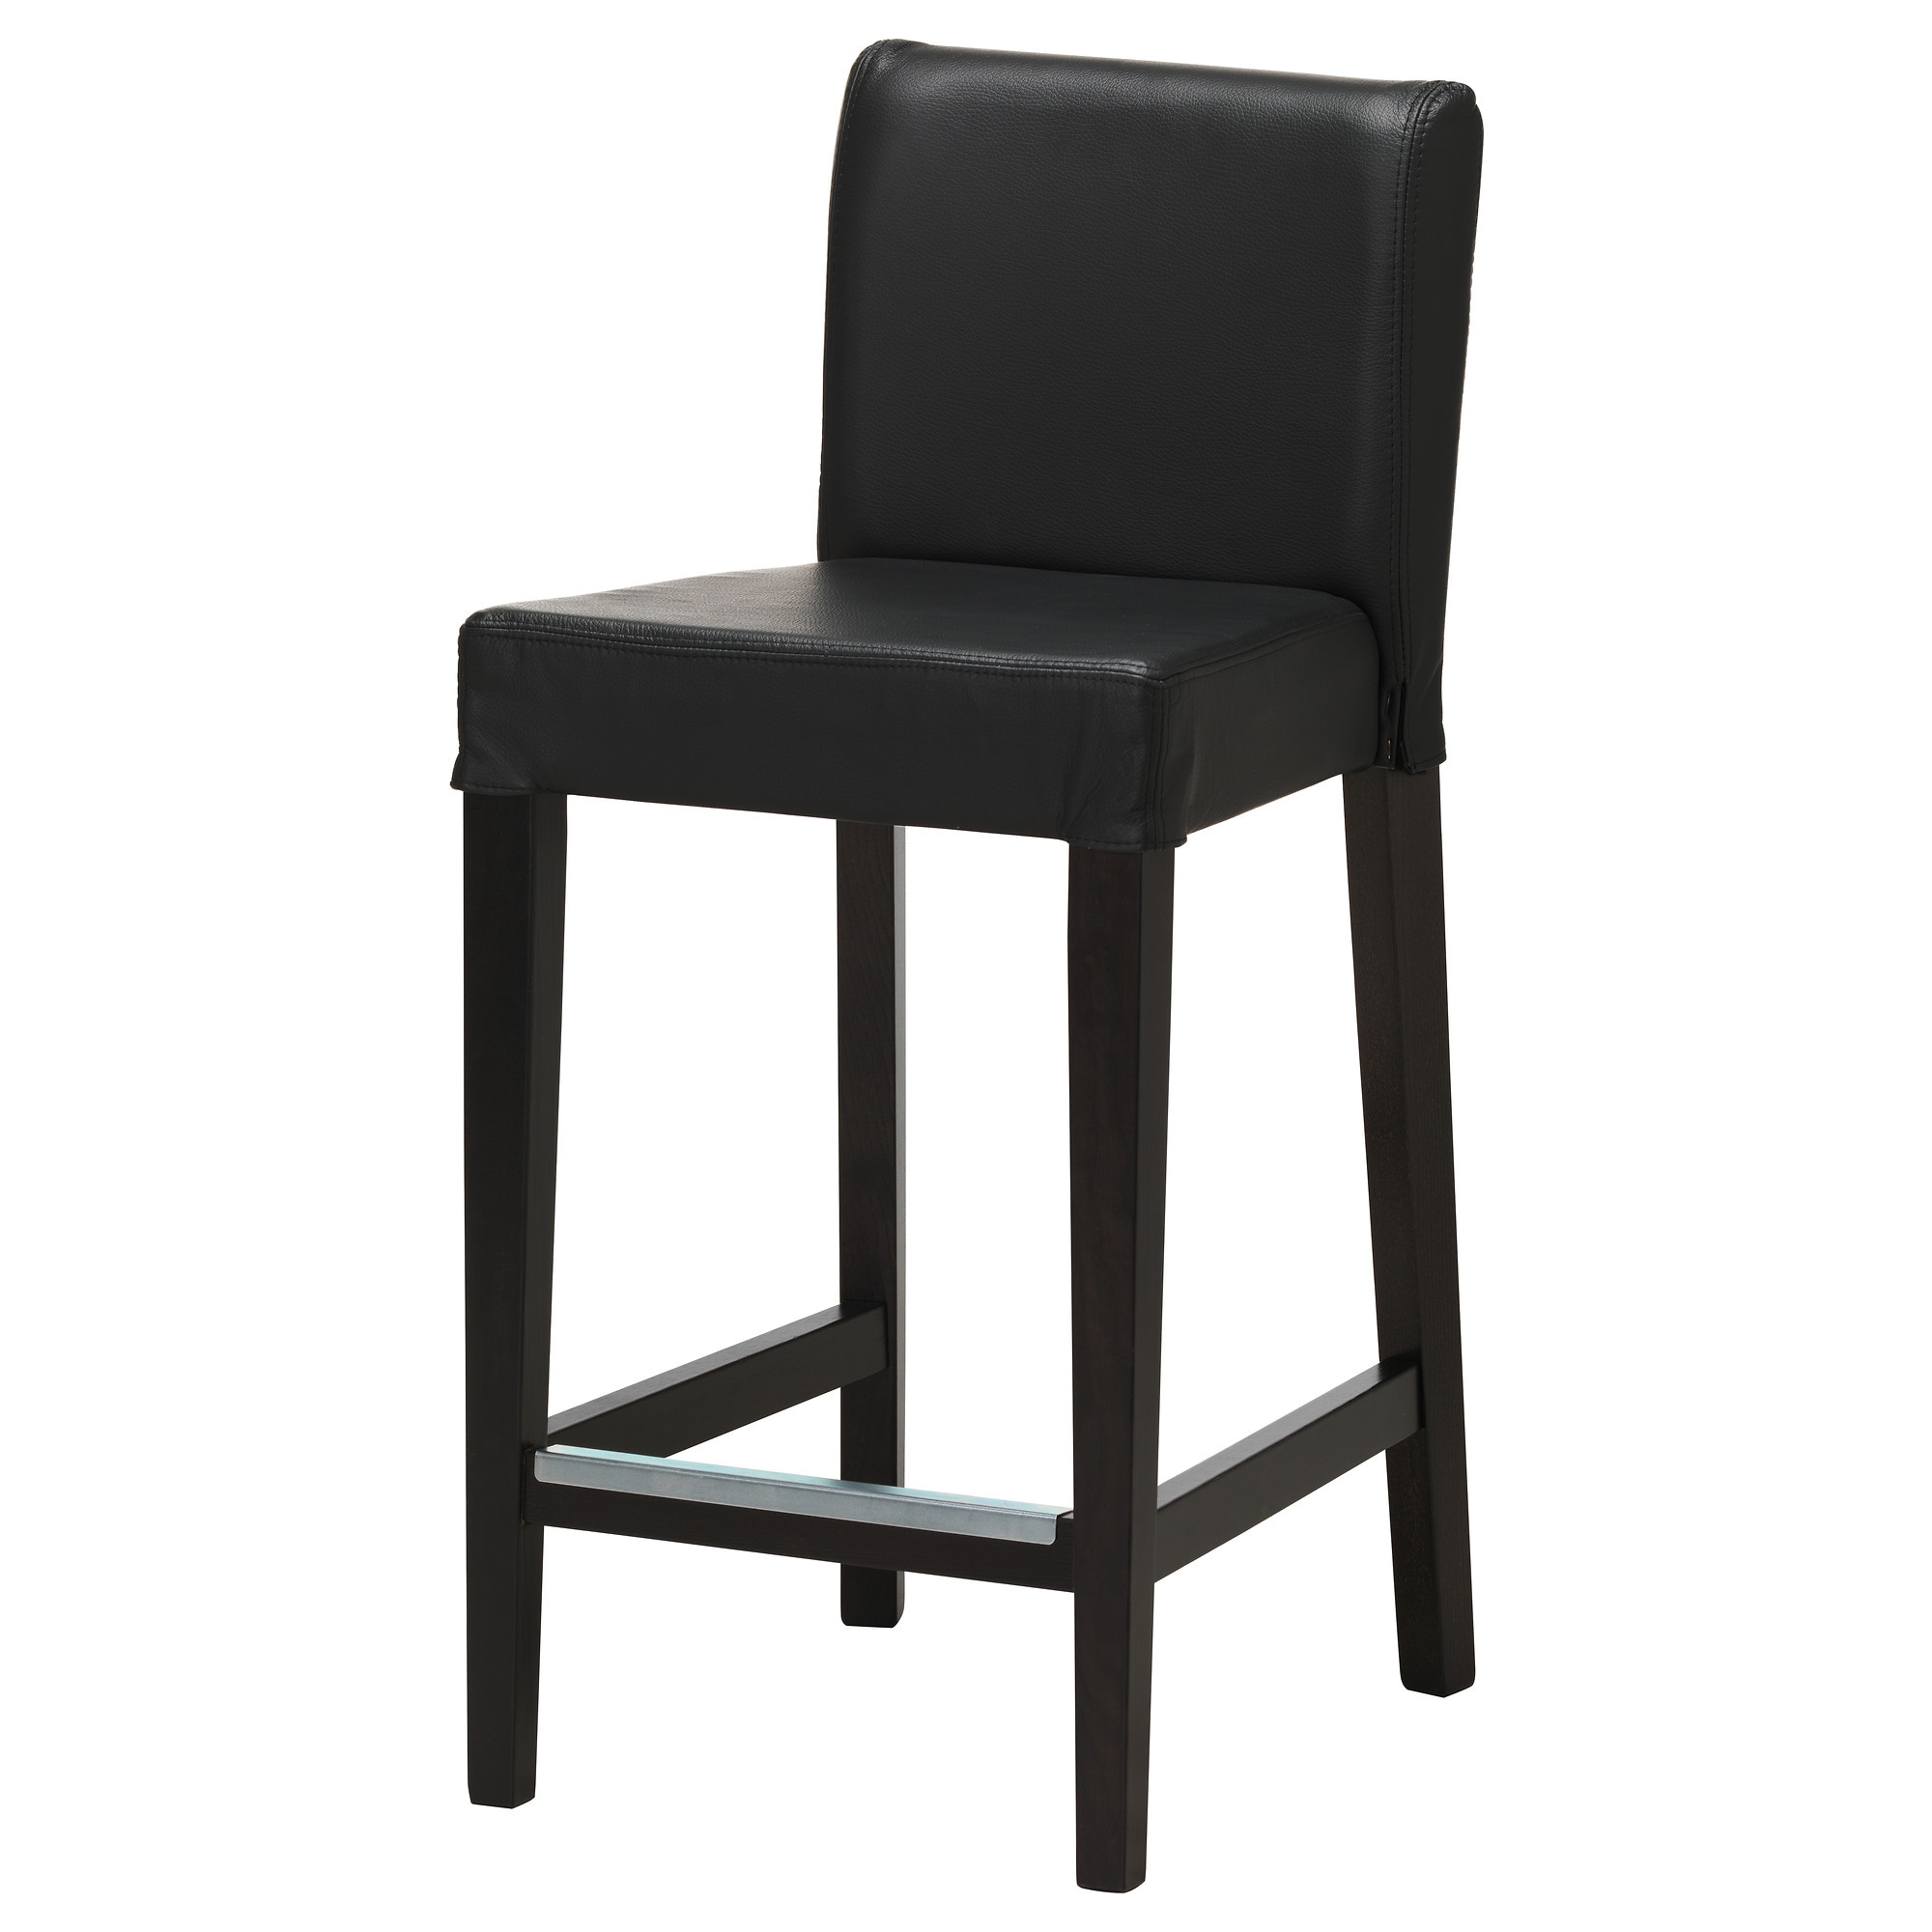 HENRIKSDAL bar stool with backrest, brown-black, Glose black Tested for: 220